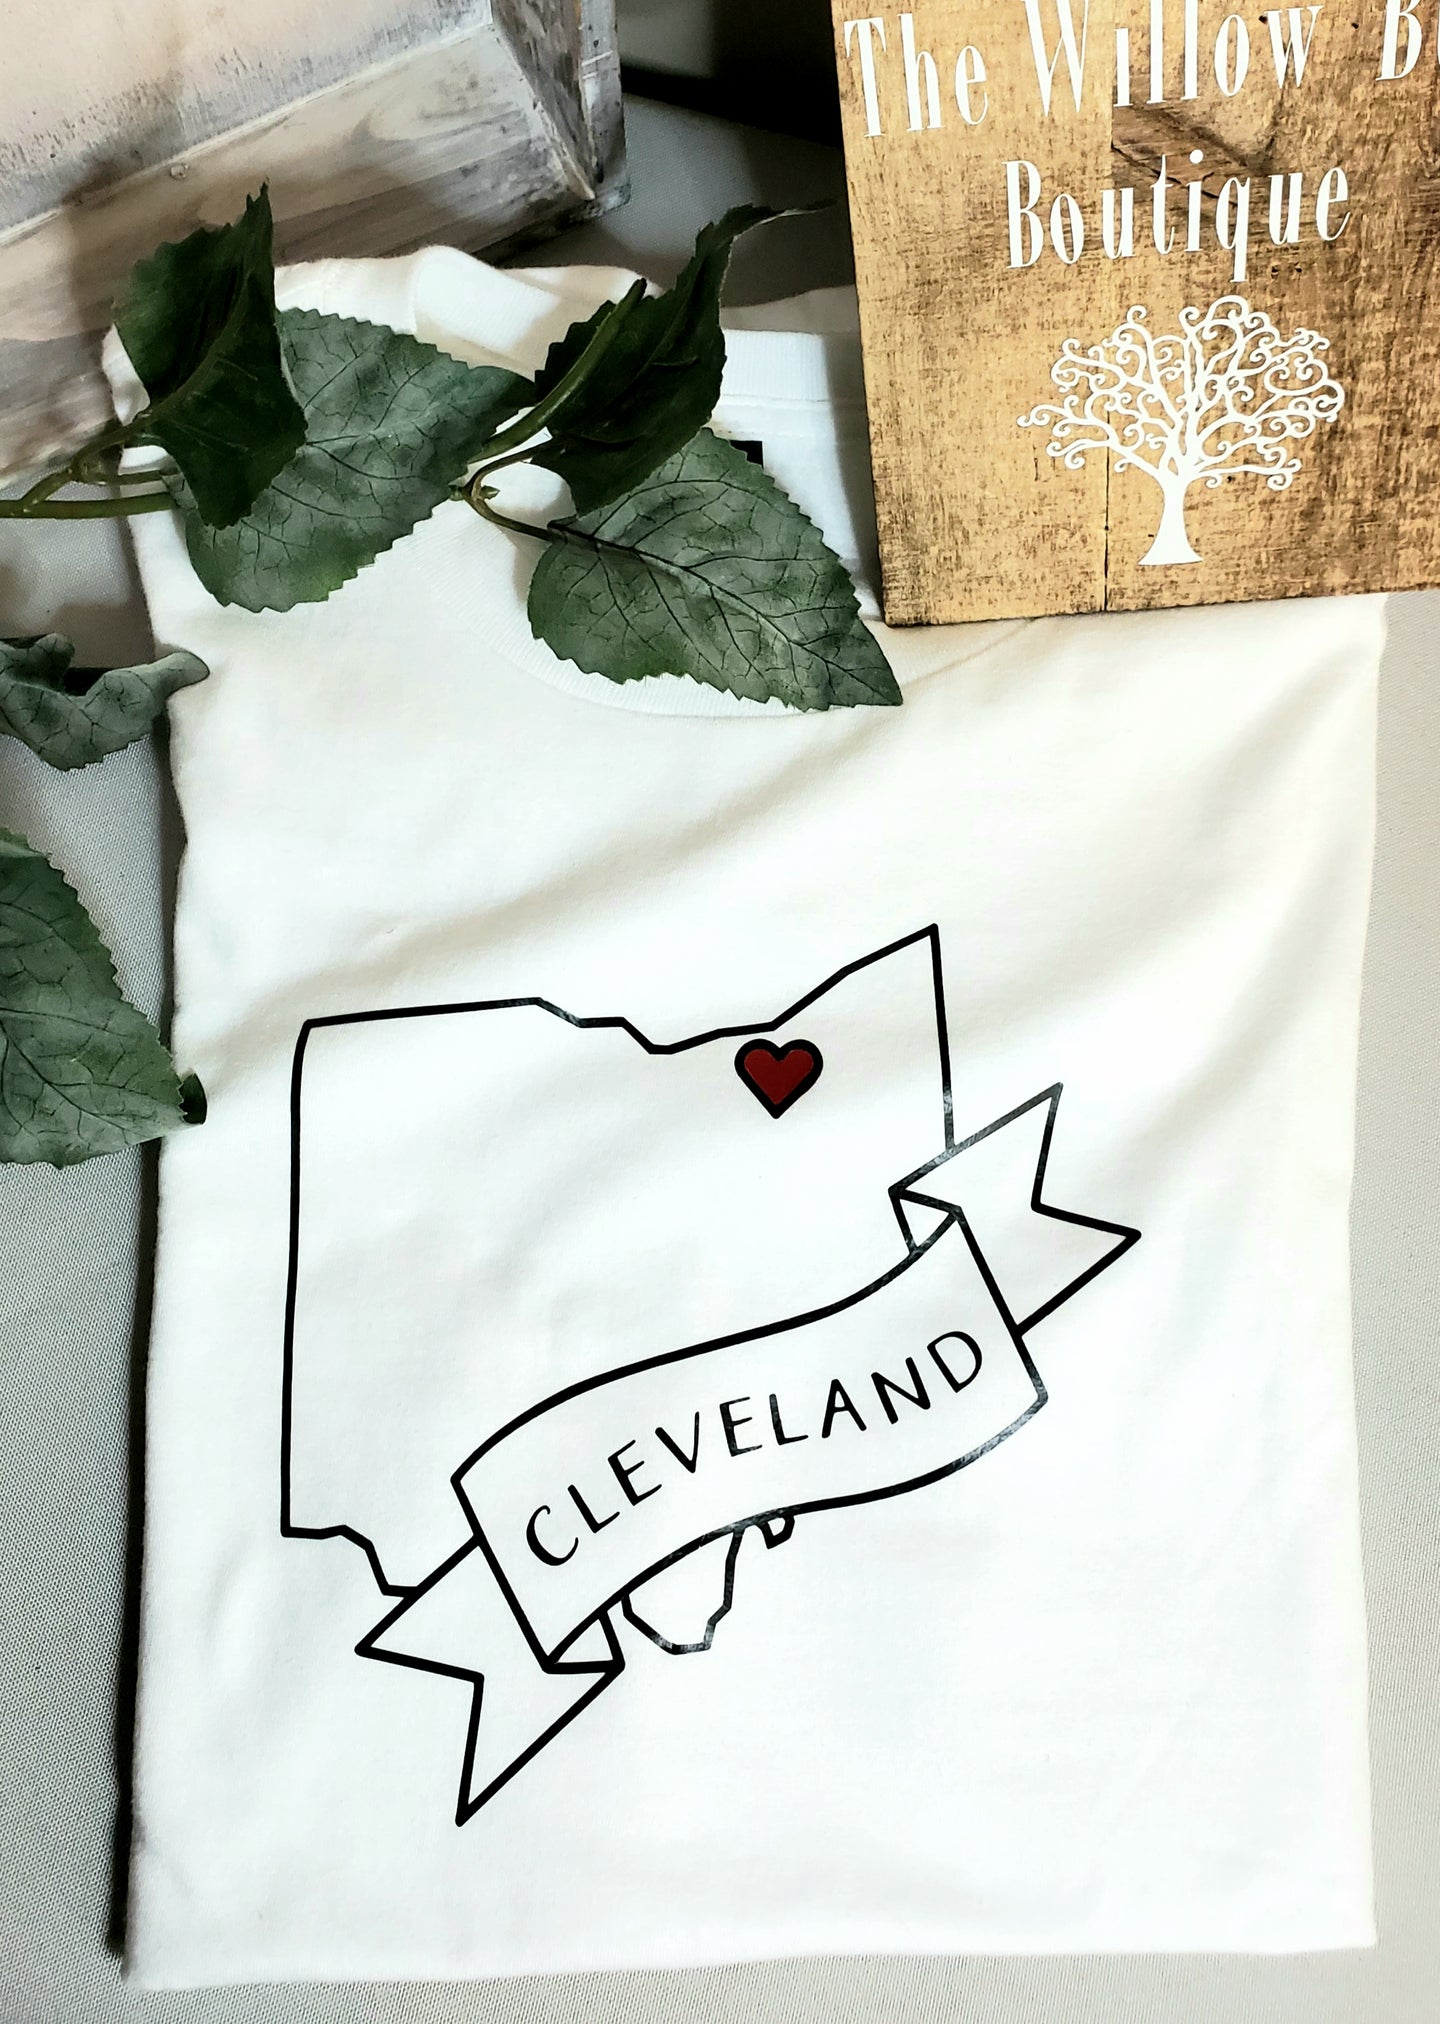 Buy Unisex White Cleveland Ohio T-shirt